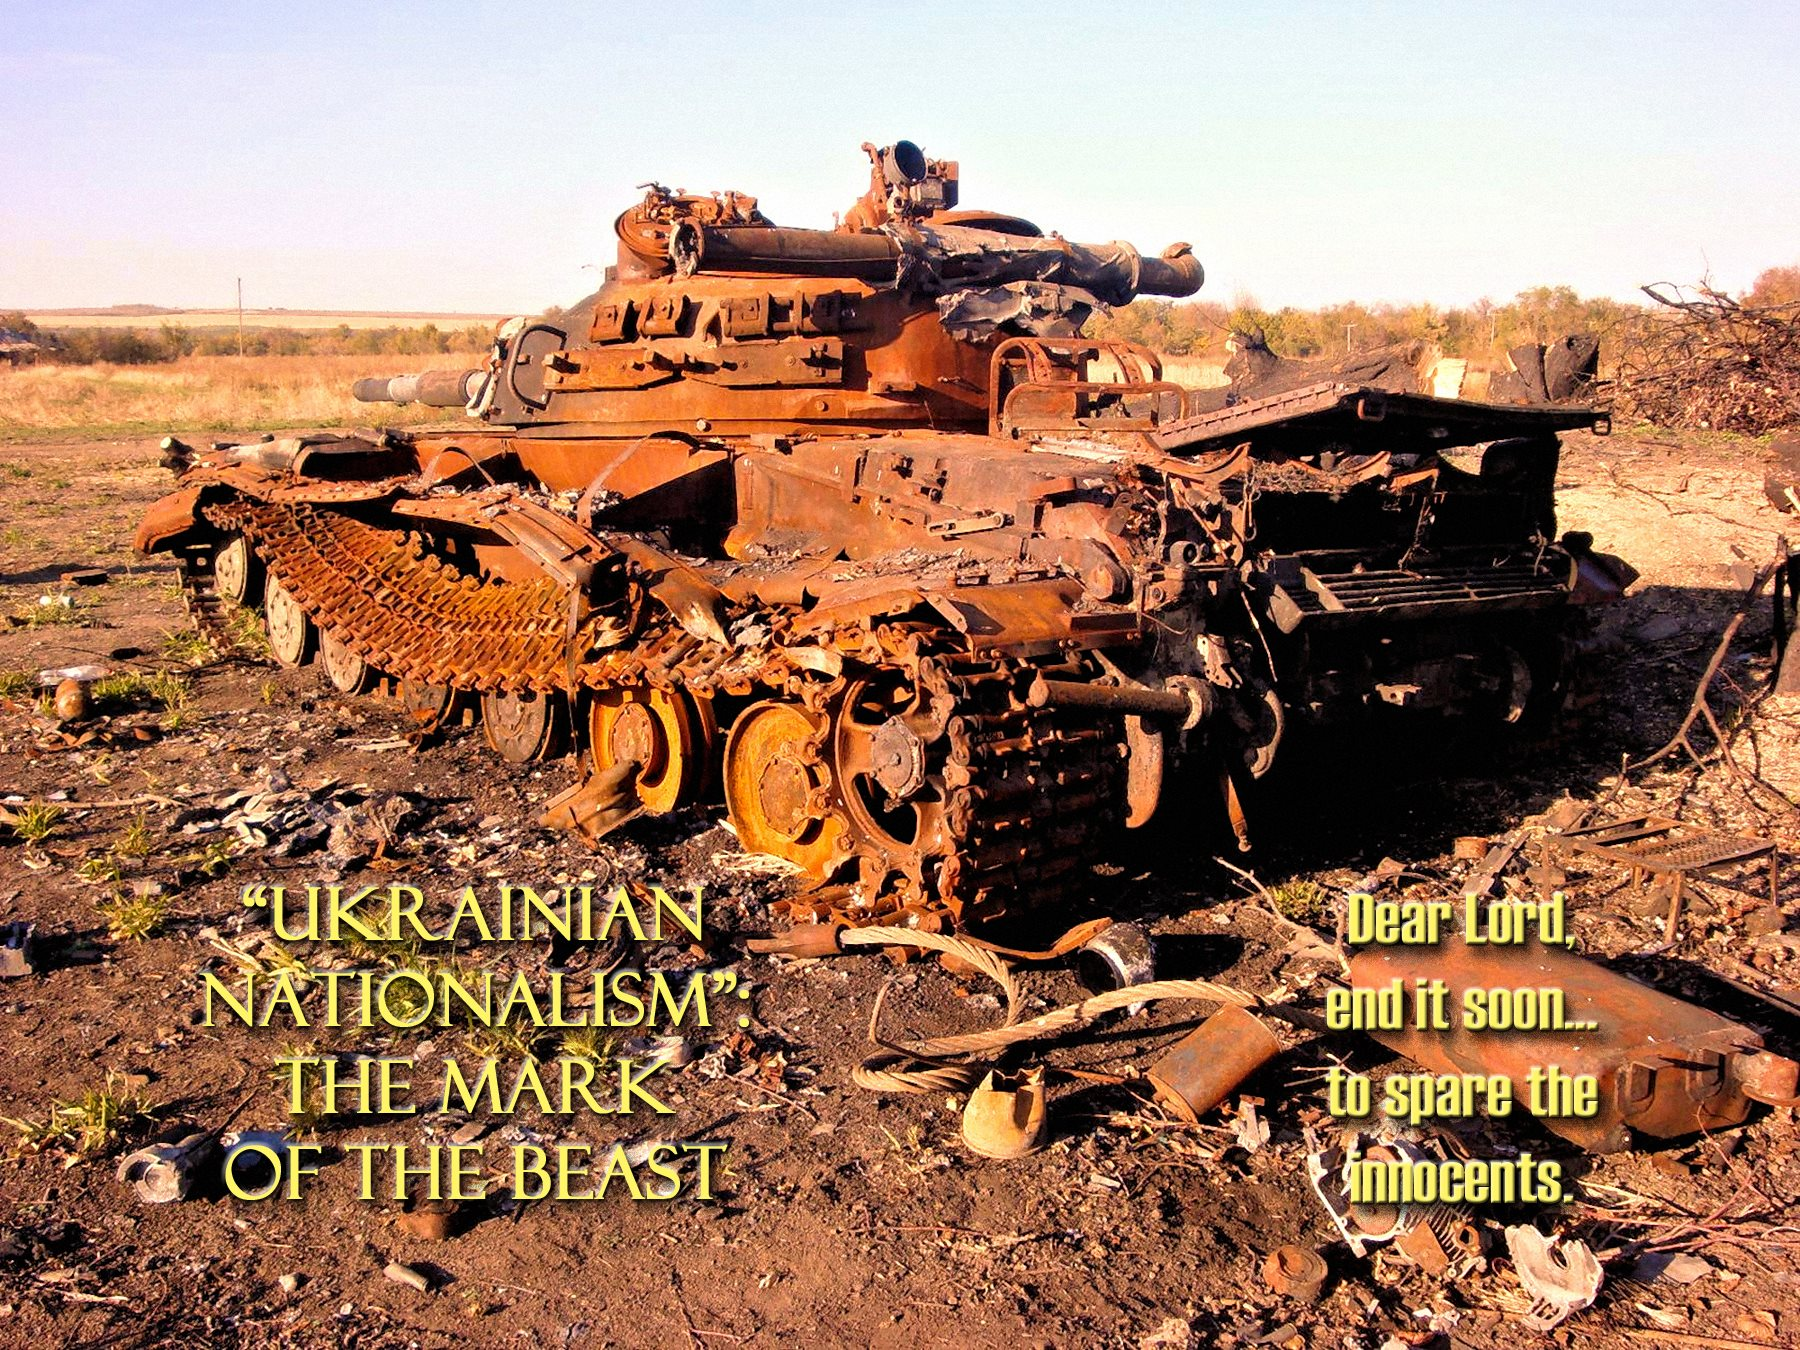 00 tank ukraine. the mark of the beast 210516